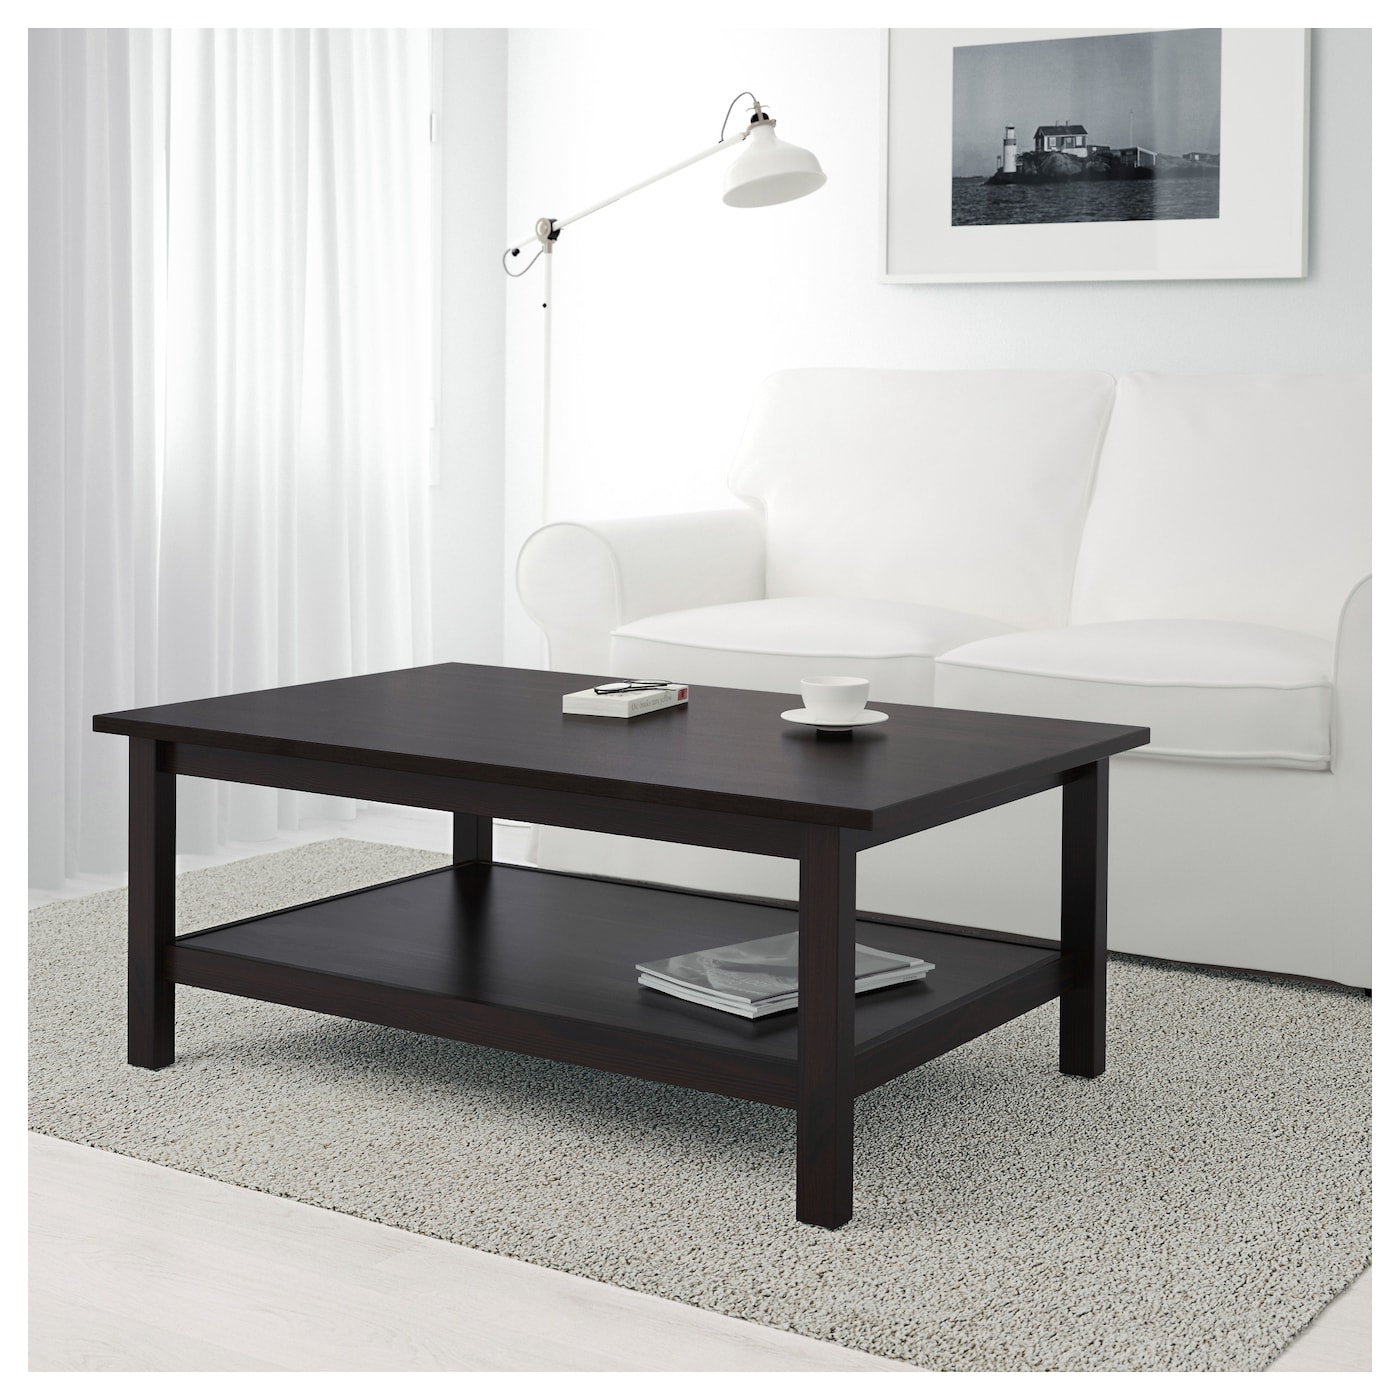 hemnes coffee table black brown 118 x 75 cm ikea. Black Bedroom Furniture Sets. Home Design Ideas